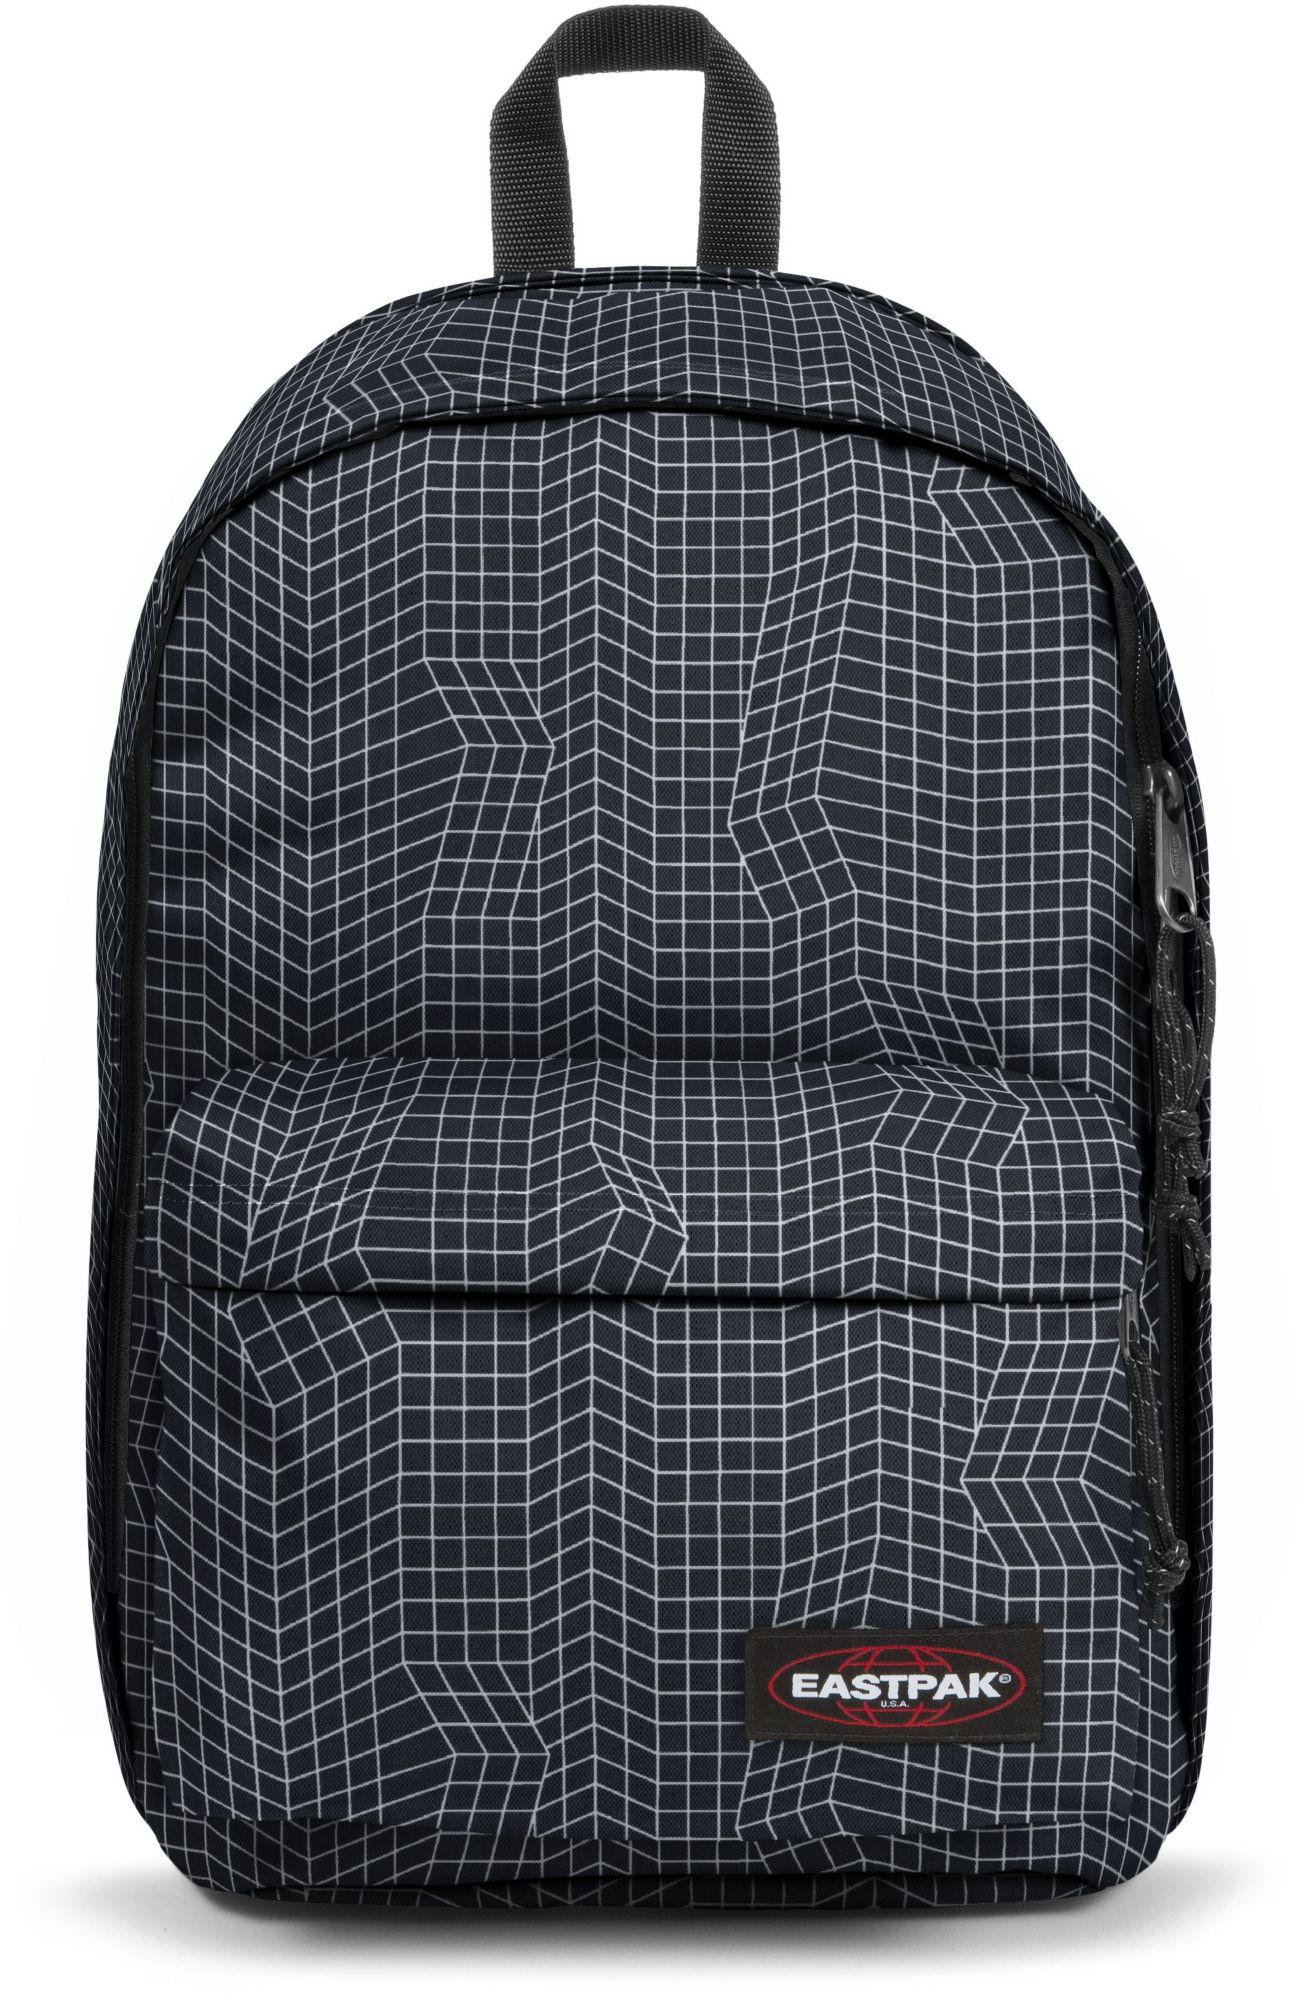 EASTPAK Eastpak Rucksack, »BACK TO WORK black dance«